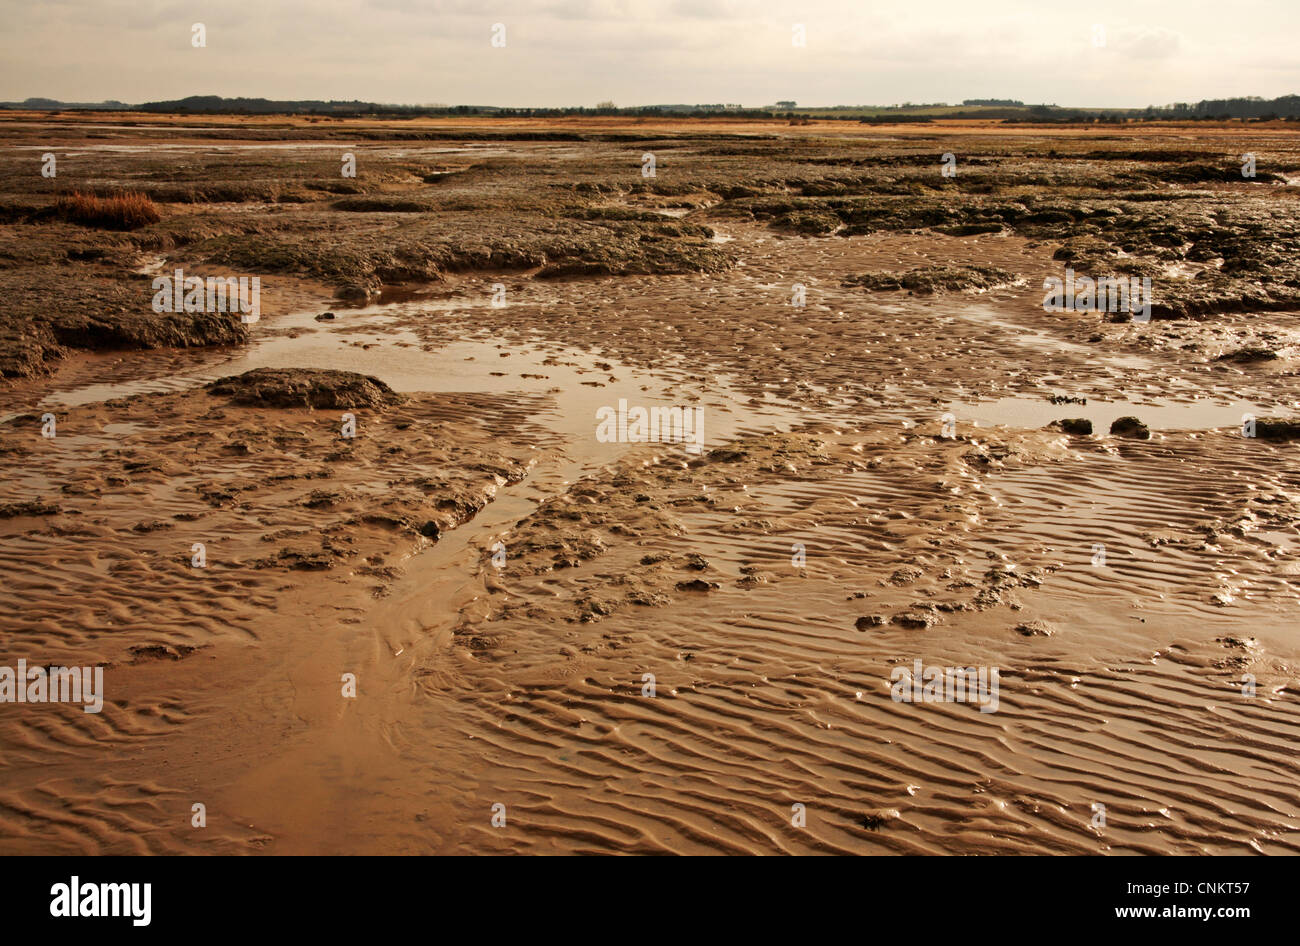 Sands and clays revealed at low tide on the edge of saltings at Stiffkey Freshes, Norfolk, England, United Kingdom. Stock Photo